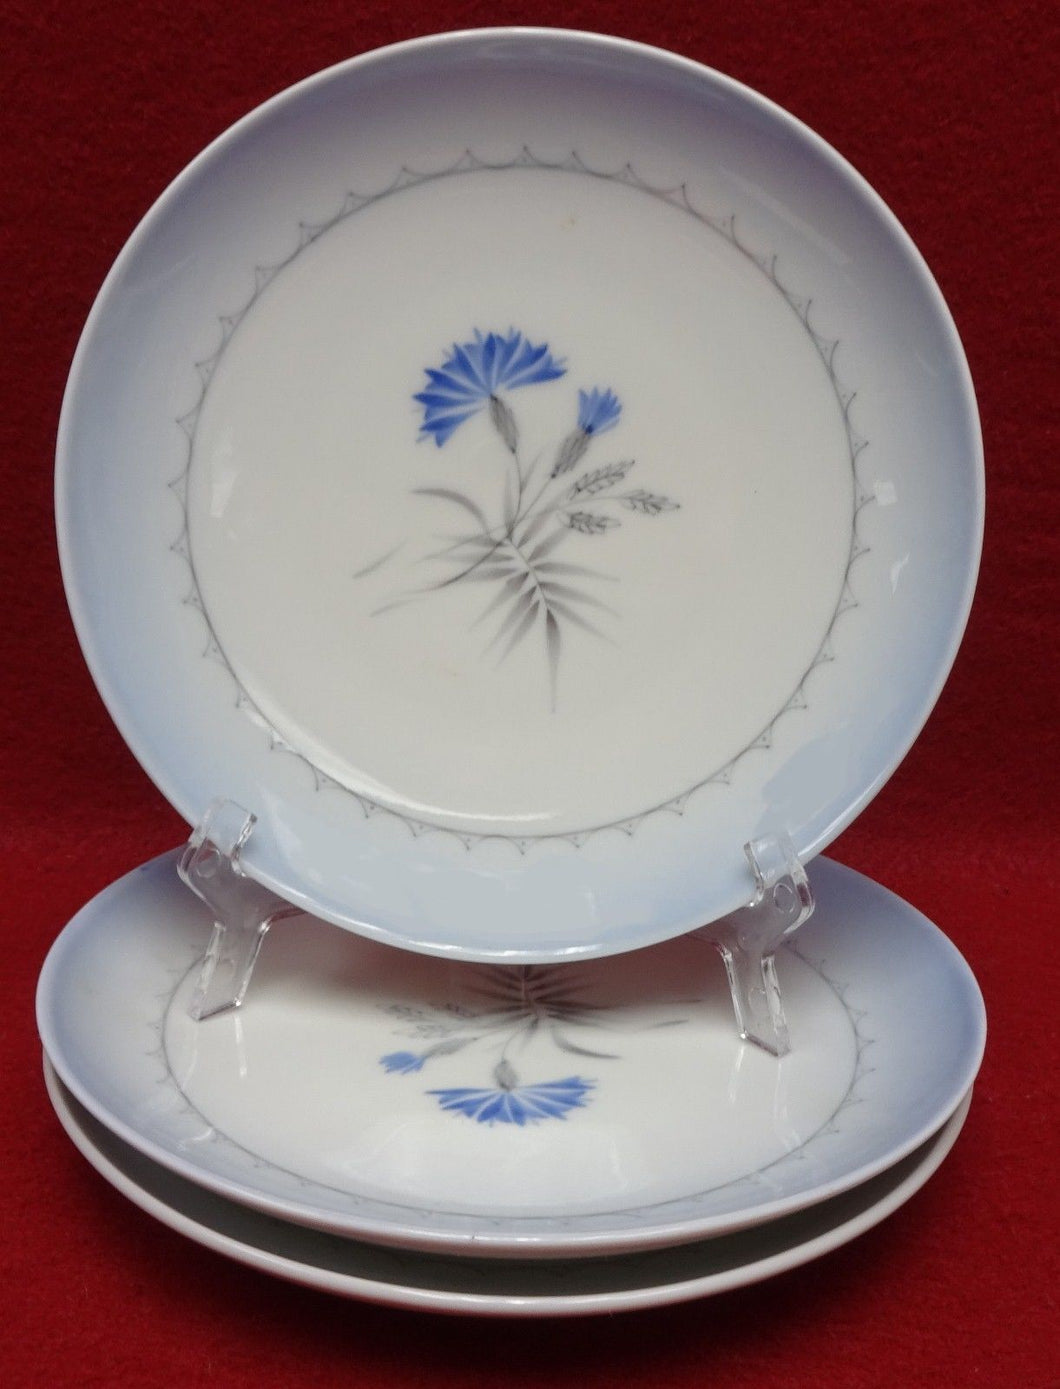 BING & GRONDAHL china CORNFLOWER BLUE pattern Set of 3 Bread 28A Plates - 6-1/4